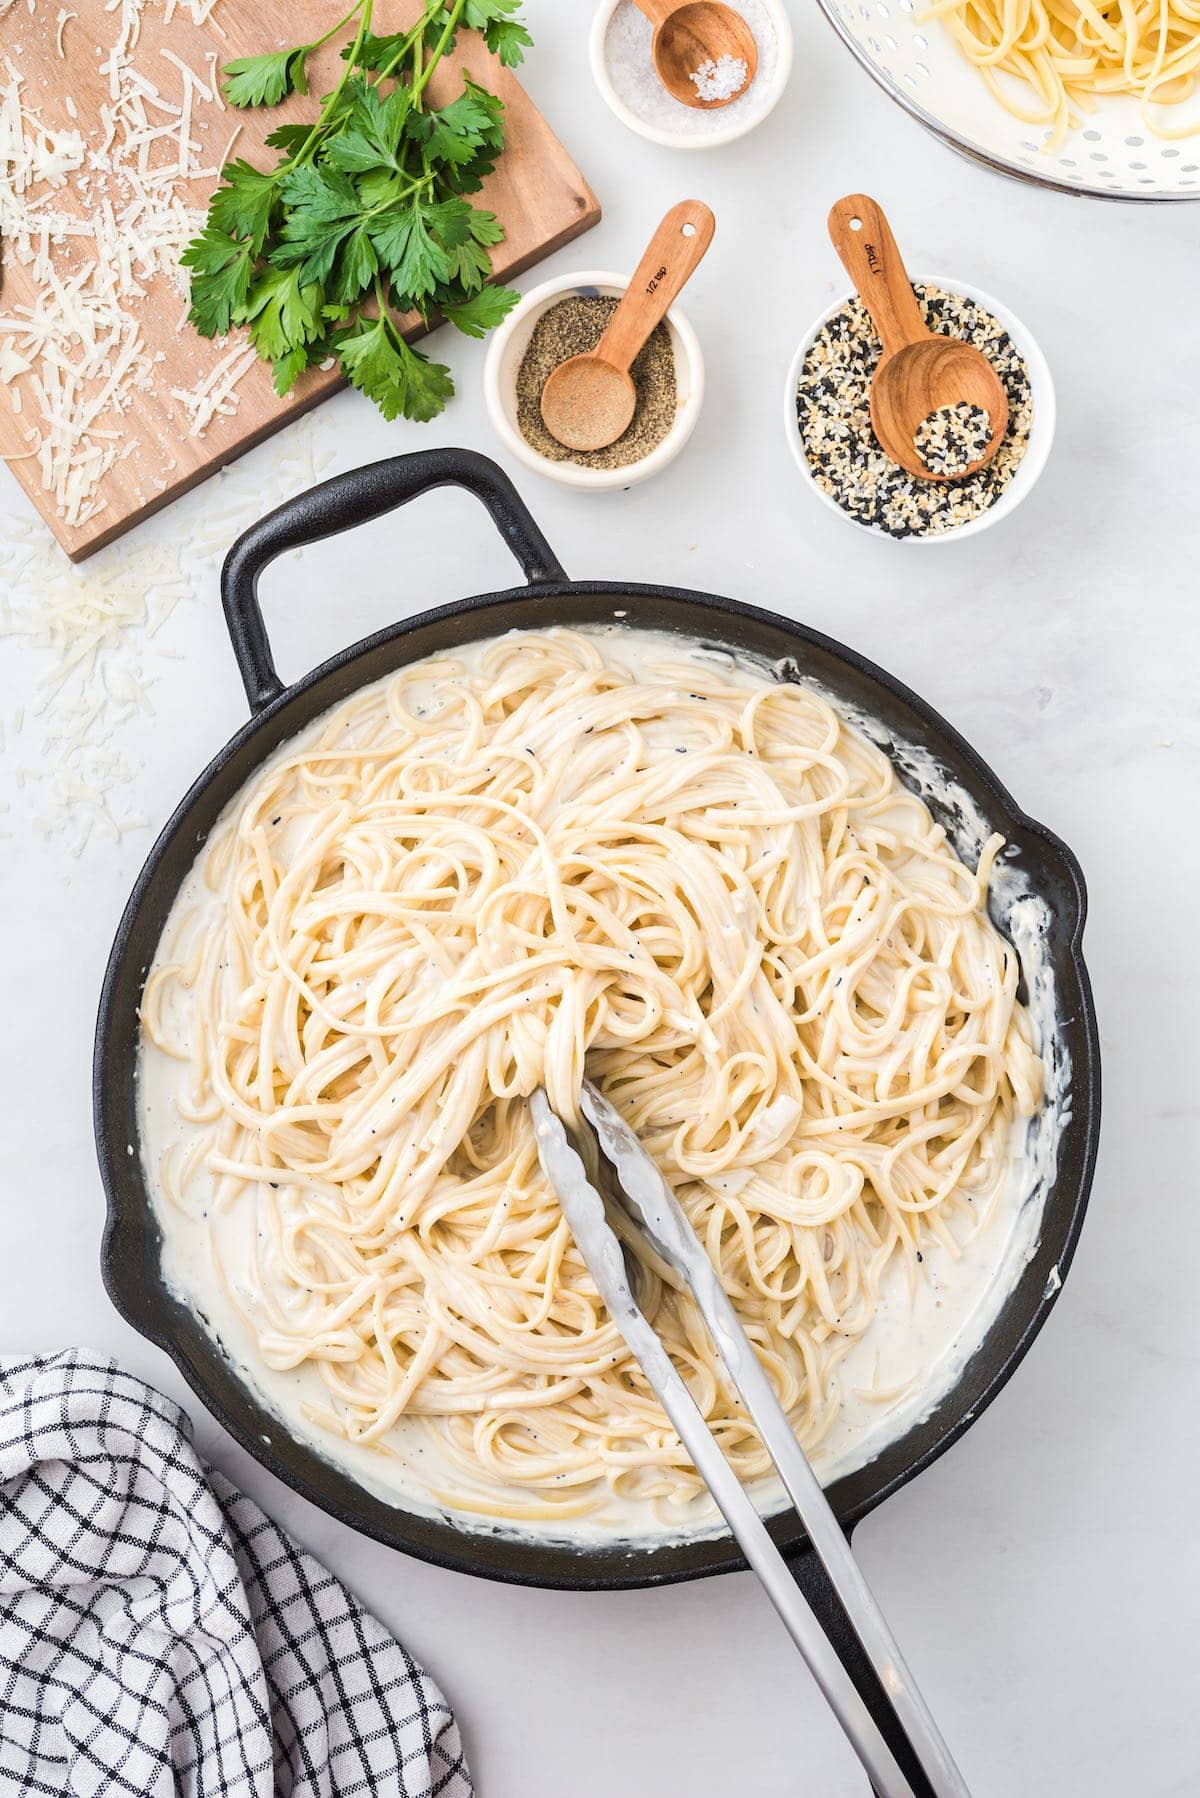 add cooked pasta and toss